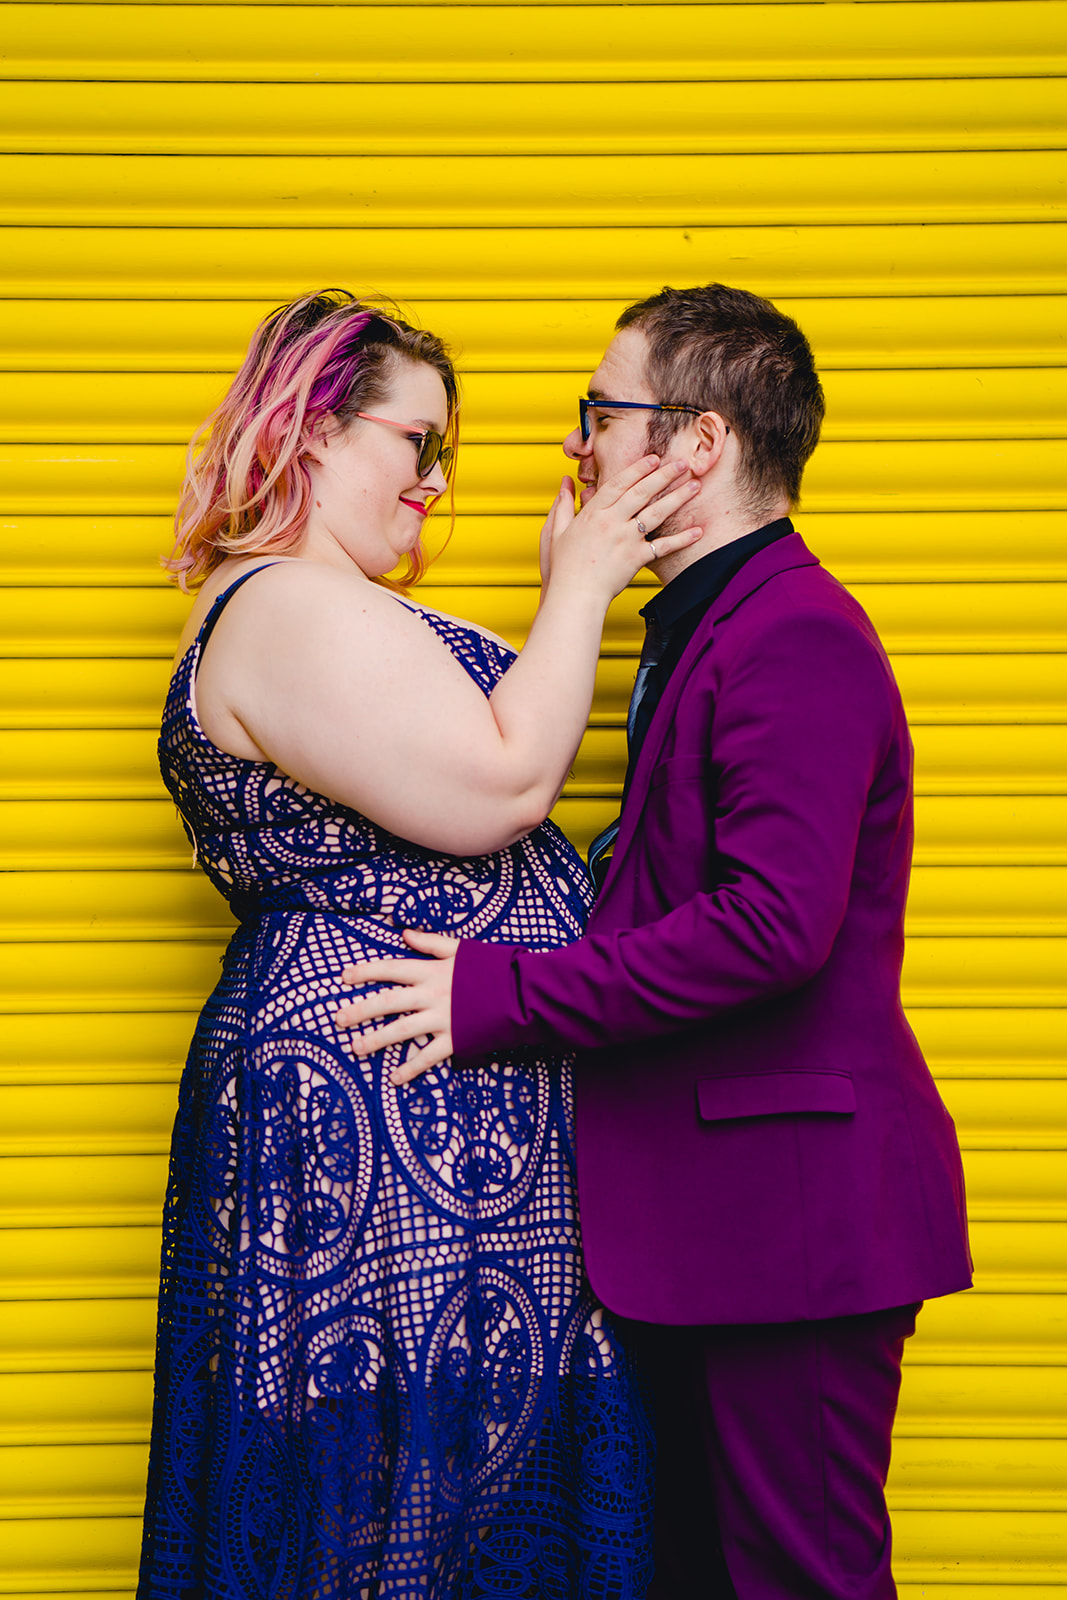 engagement shoots - birmingham engagement shoot - colourful wedding photoshoot - quirky wedding photos - fun wedding photography - alternative wedding - fun engagement photo